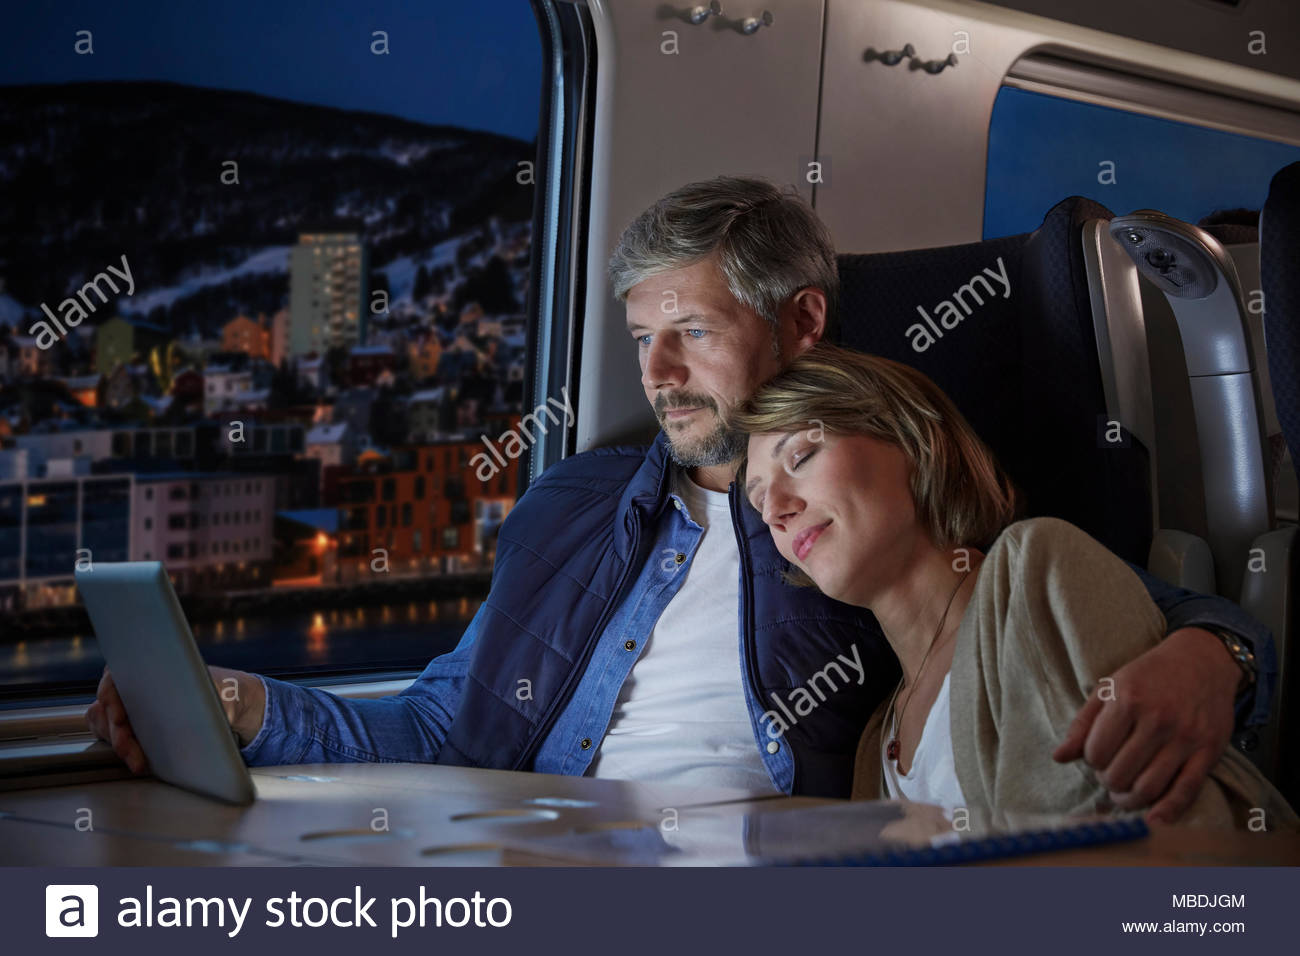 Wife Watching Husband Sleeping Stock Photos  Wife Watching Husband Sleeping Stock -2591